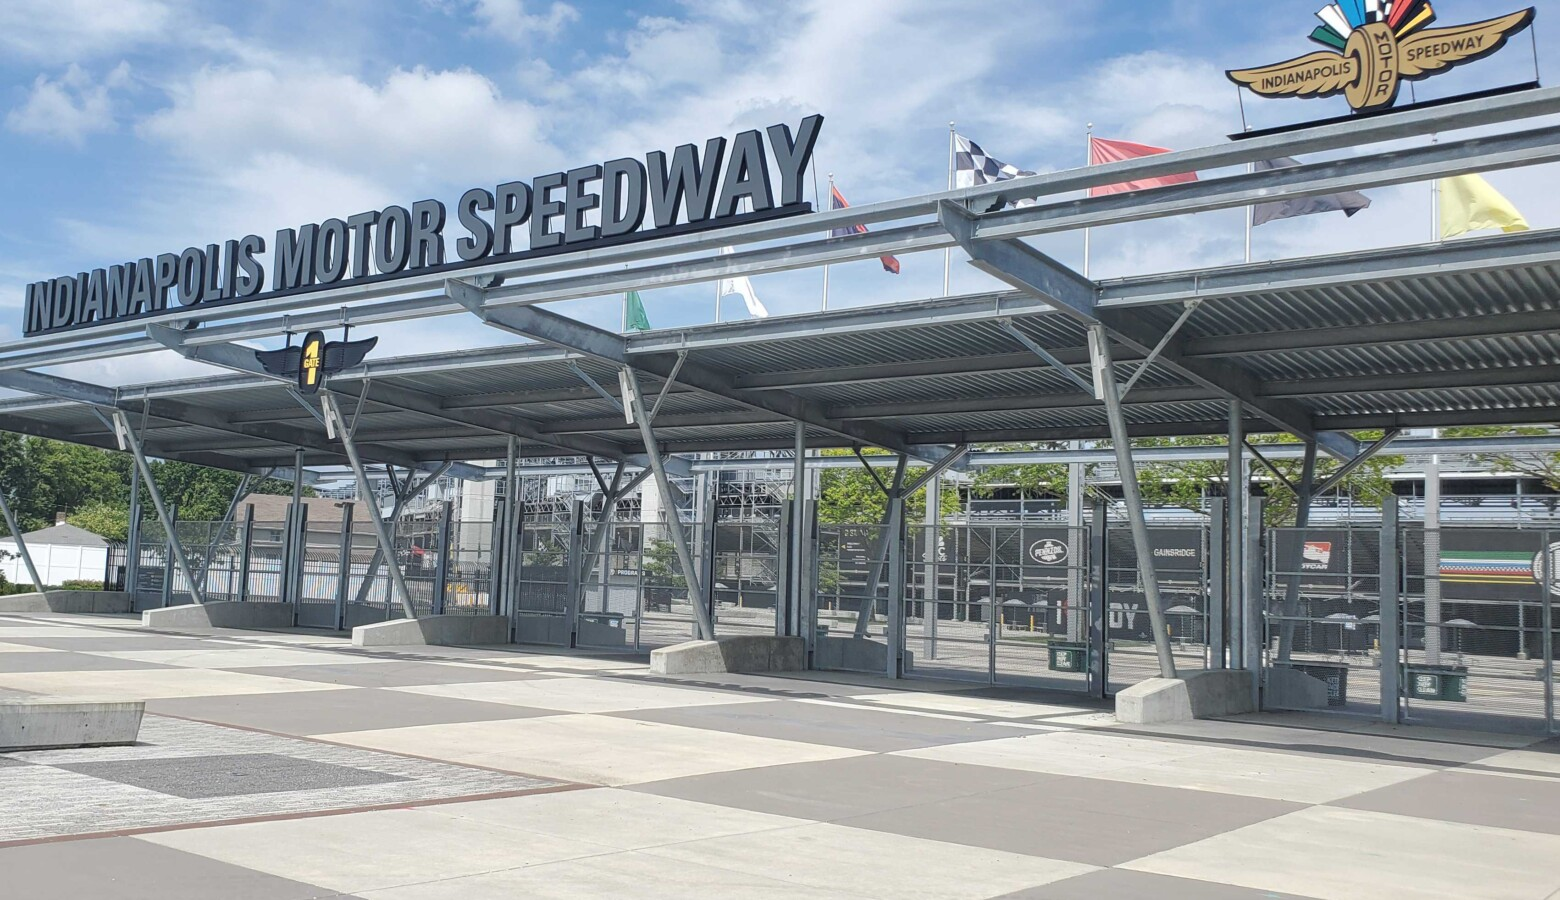 The first Indy Autonomous Challenge will take place at the Indianapolis Motor Speedway Oct. 23. (Samantha Horton/IPB News)